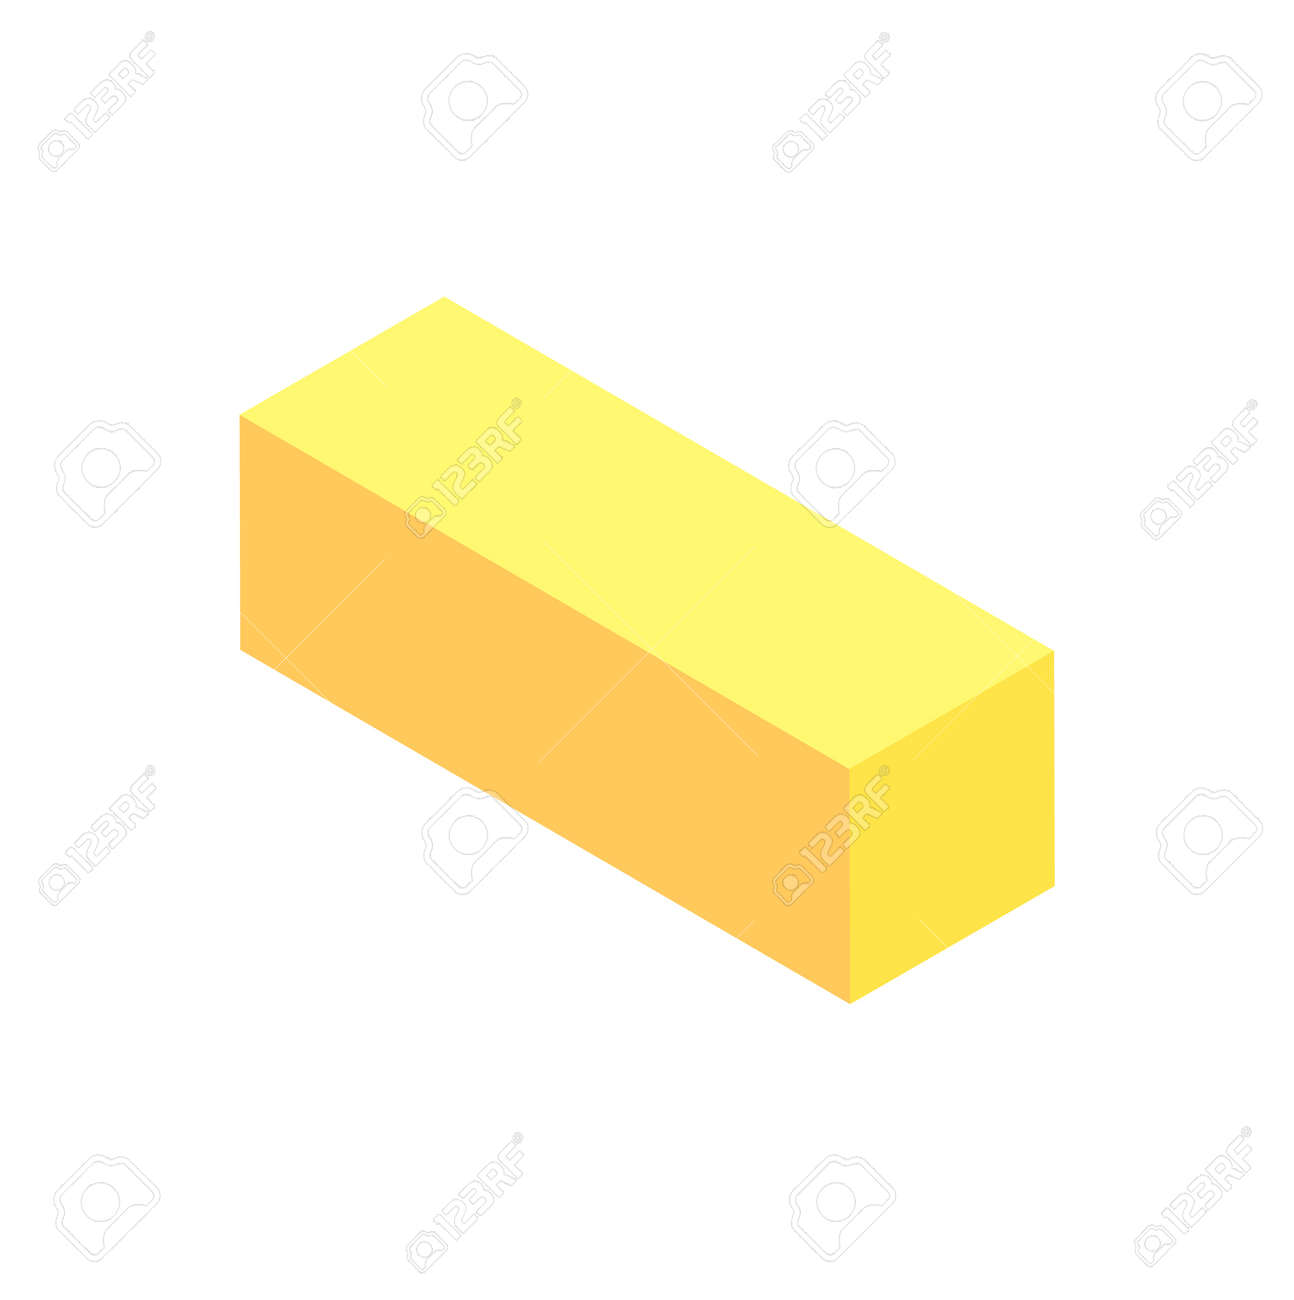 Vertical Geometric Figure Template Yellow Cuboid Isolated On